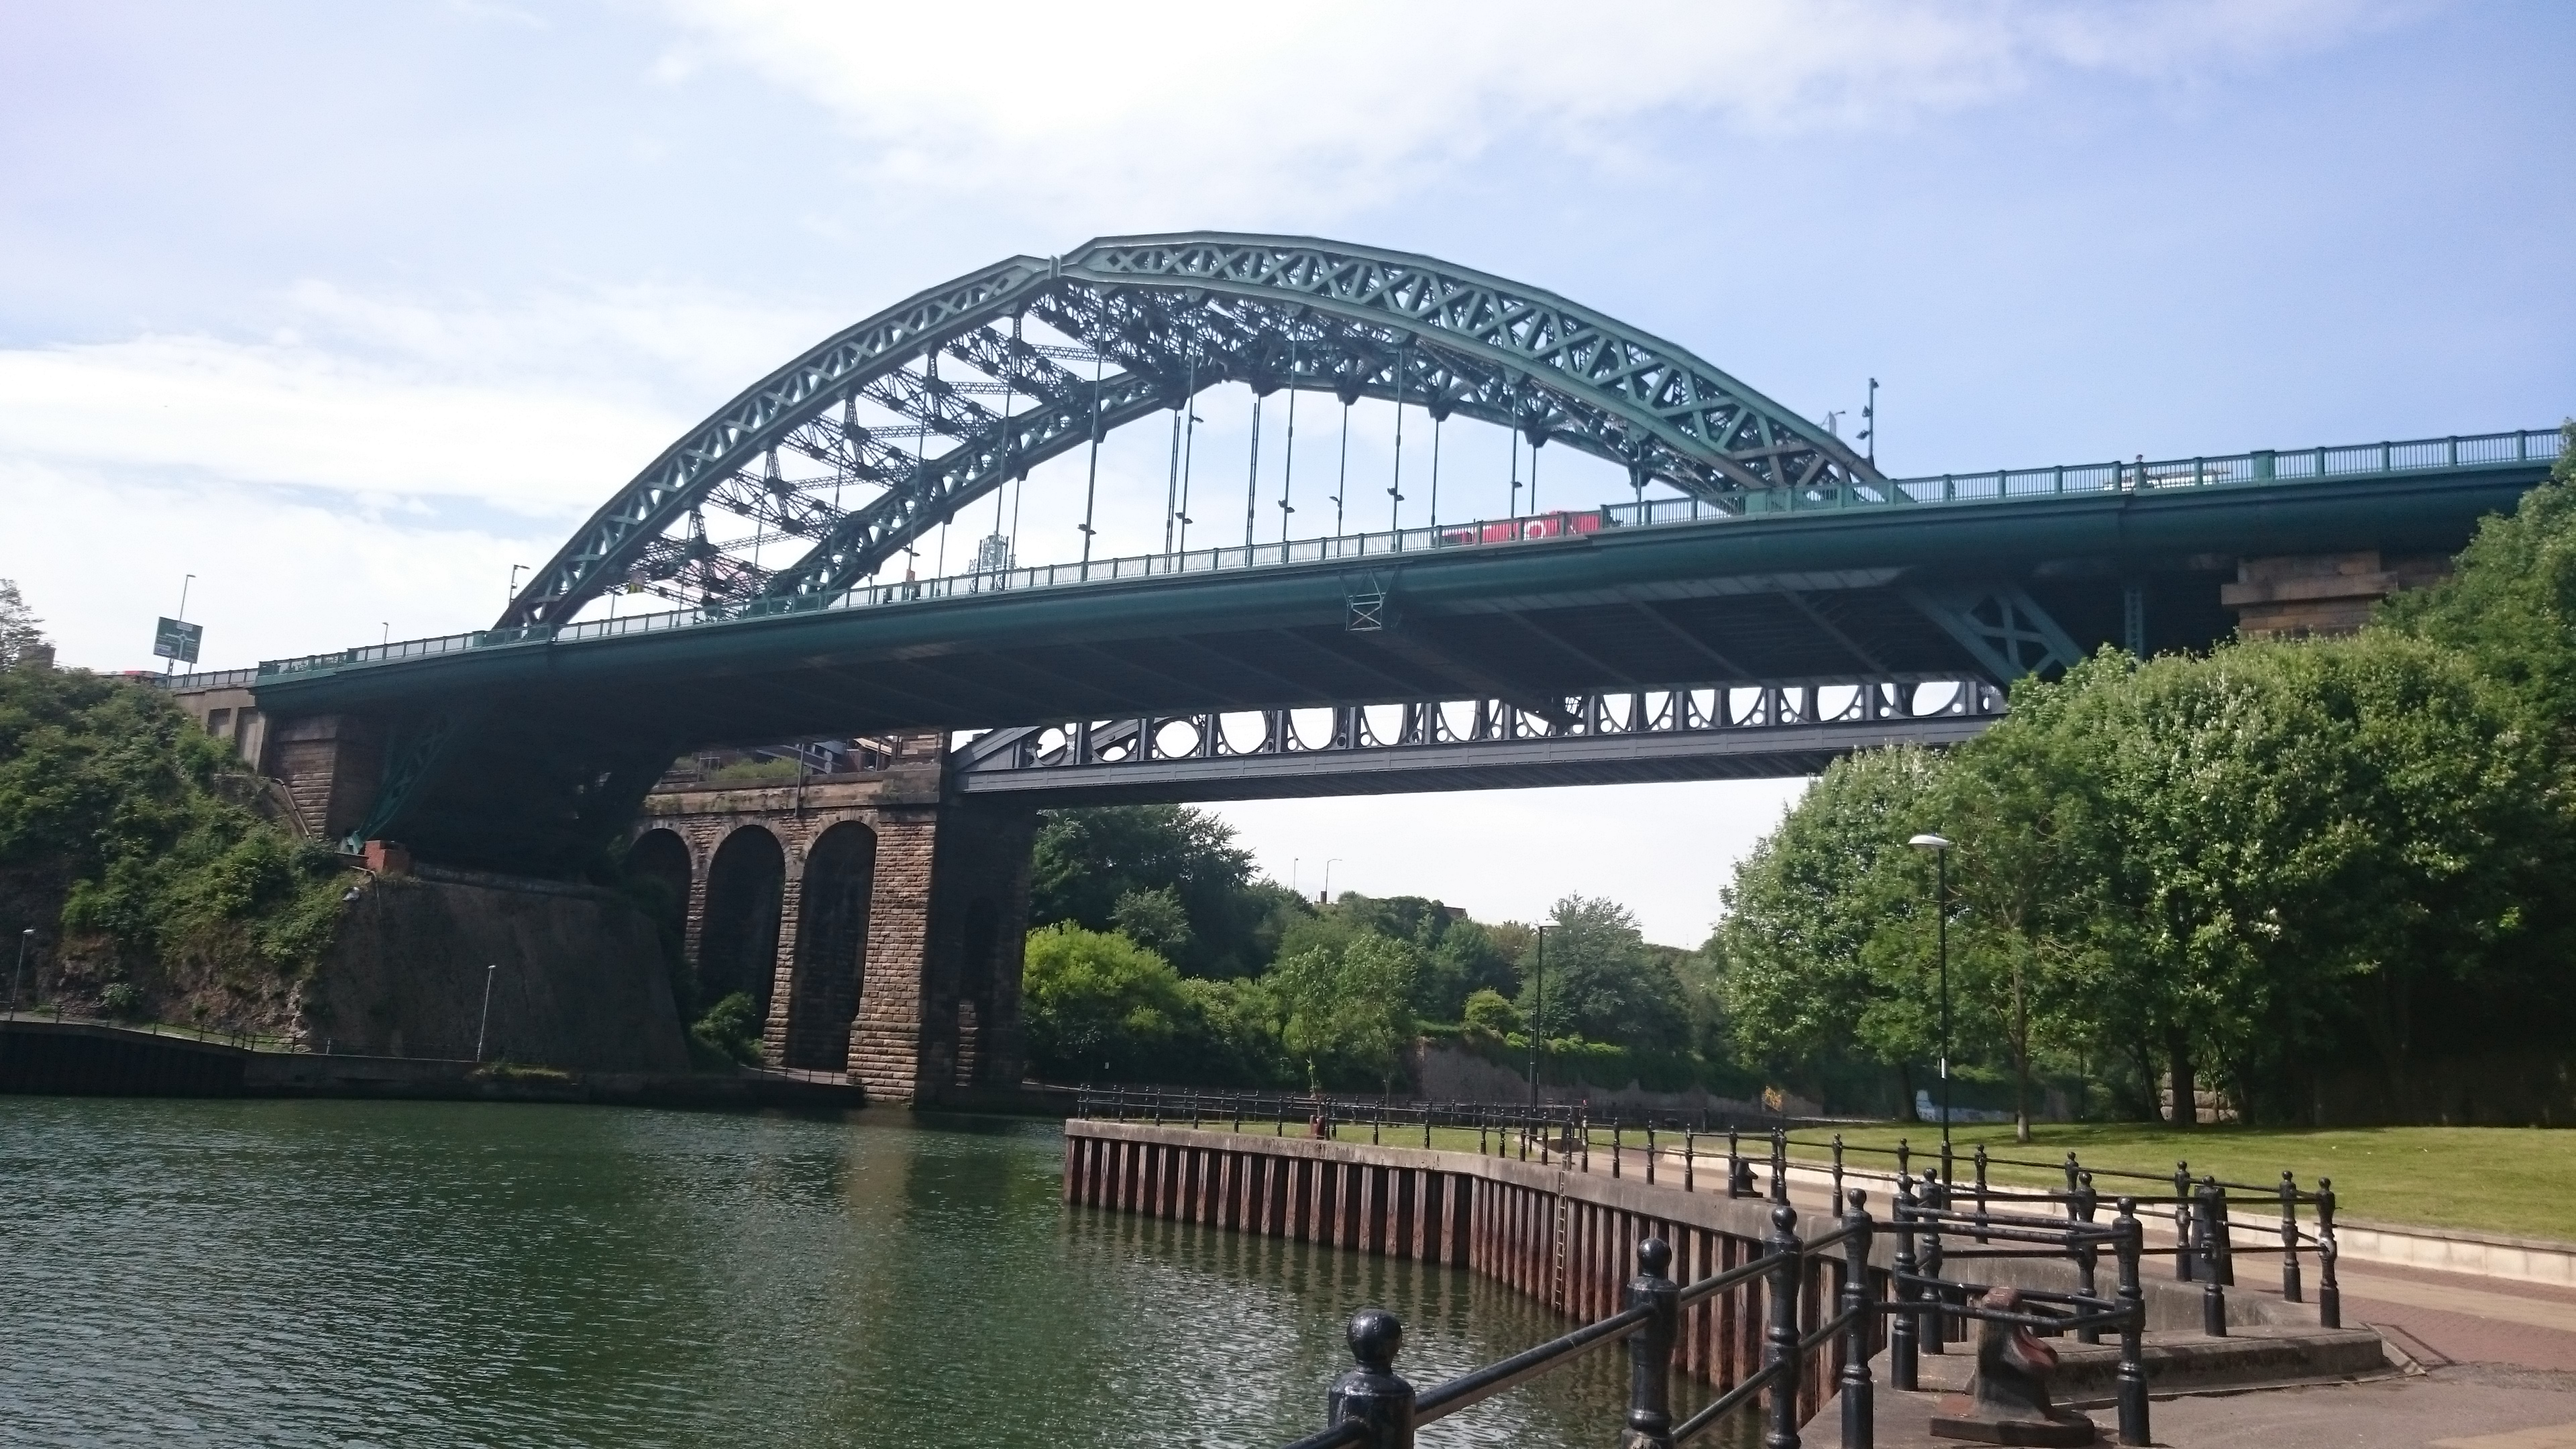 The Wearmouth Bridge, Sunderland